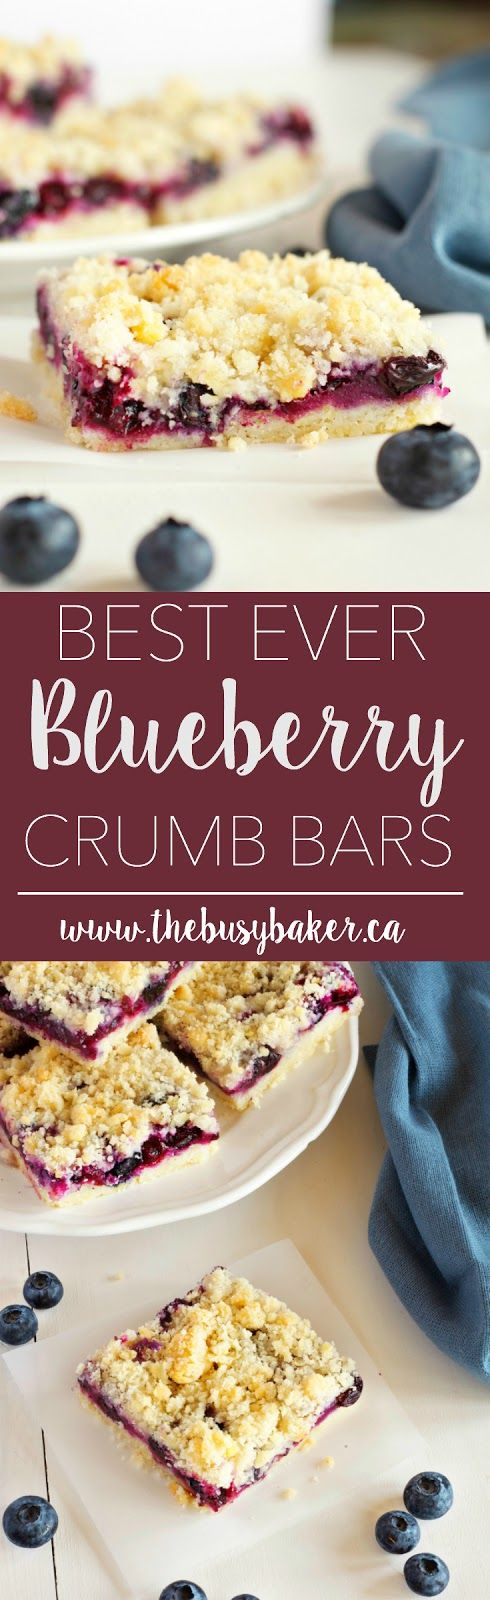 These Blueberry Crumb Bars are the perfect sweet snack! Recipe from www.thebusybaker.ca!